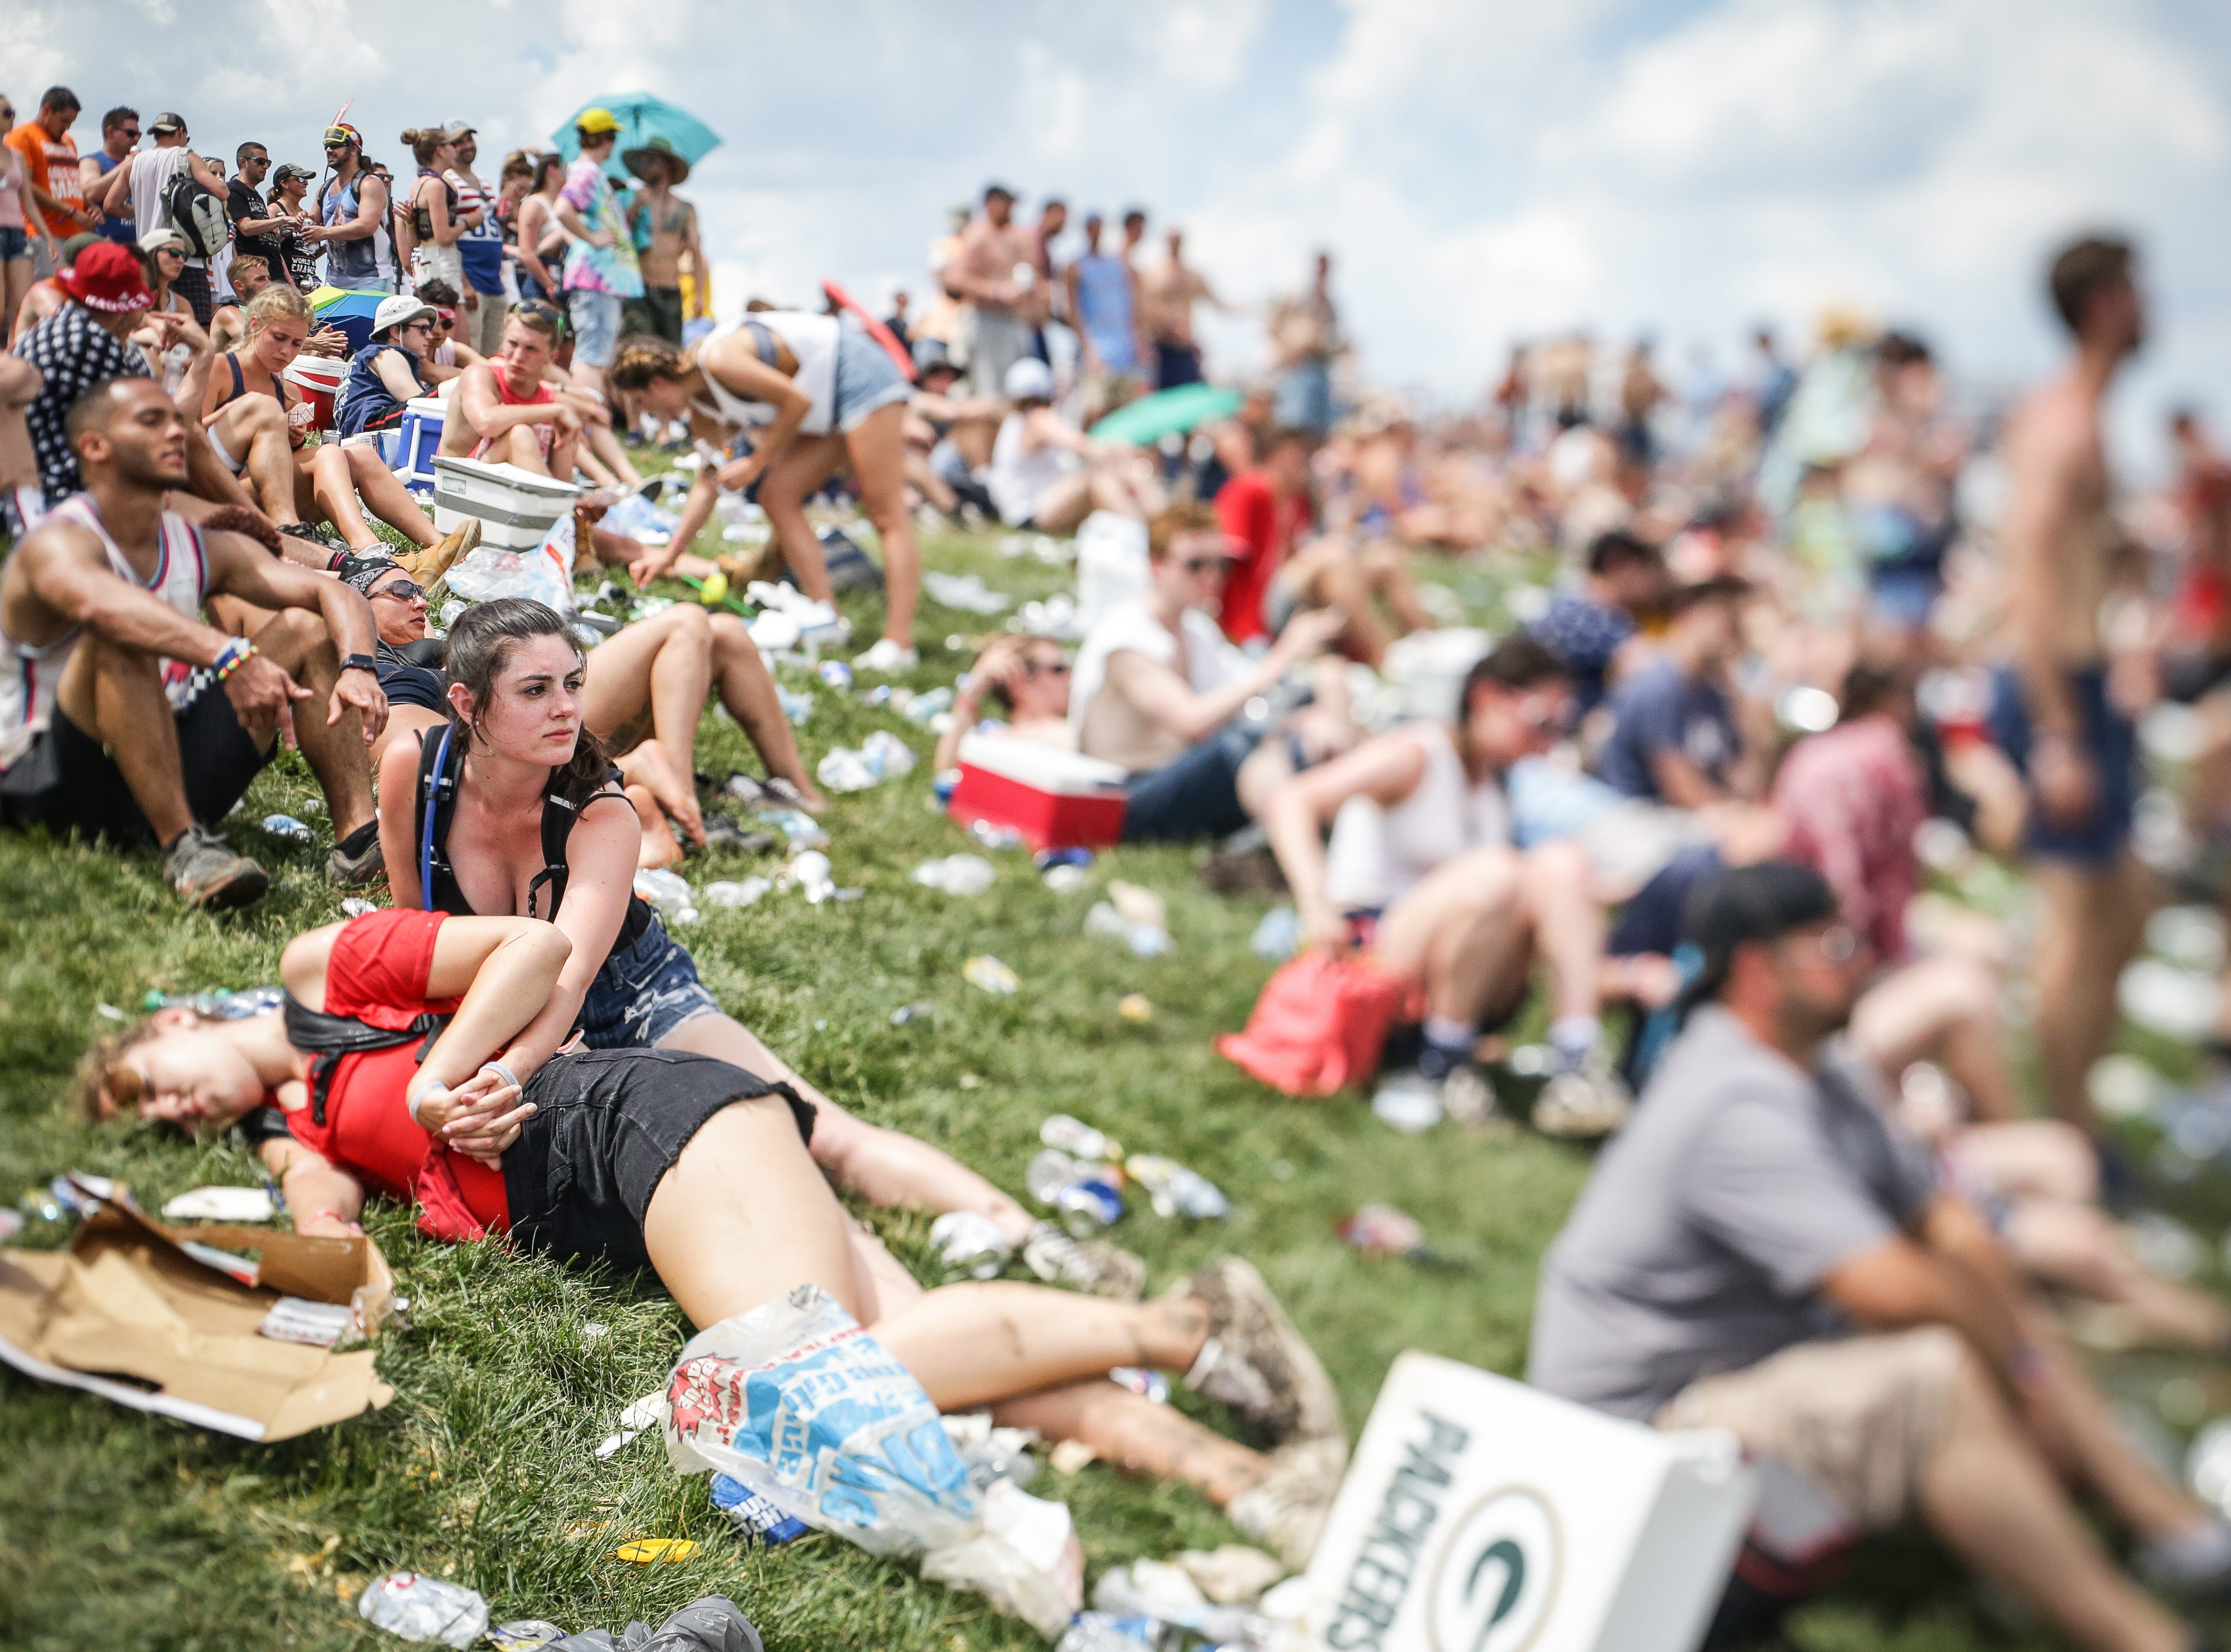 Fans enjoy a day in the Snake Pit during the 102nd running of the Indy 500 at Indianapolis Motor Speedway on Sunday, May 27, 2018.